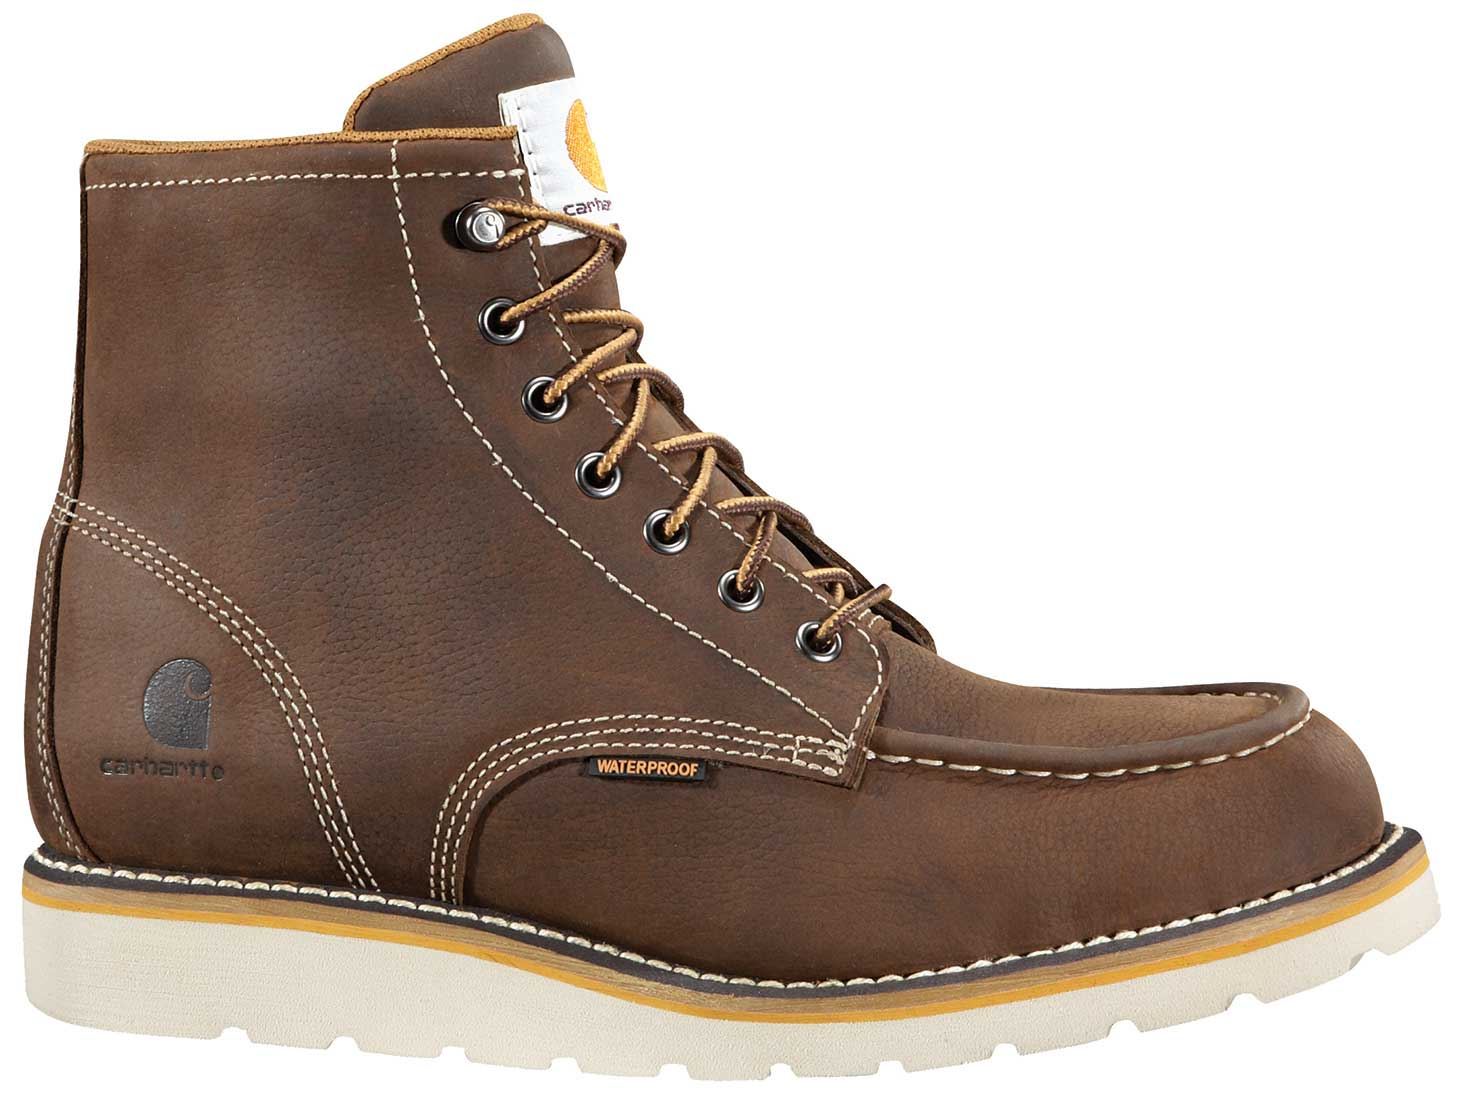 Carhartt Mens Brown Leather Waterproof Moc-Toe Wedge Soft Toe 6-inch lace-up Work Boot